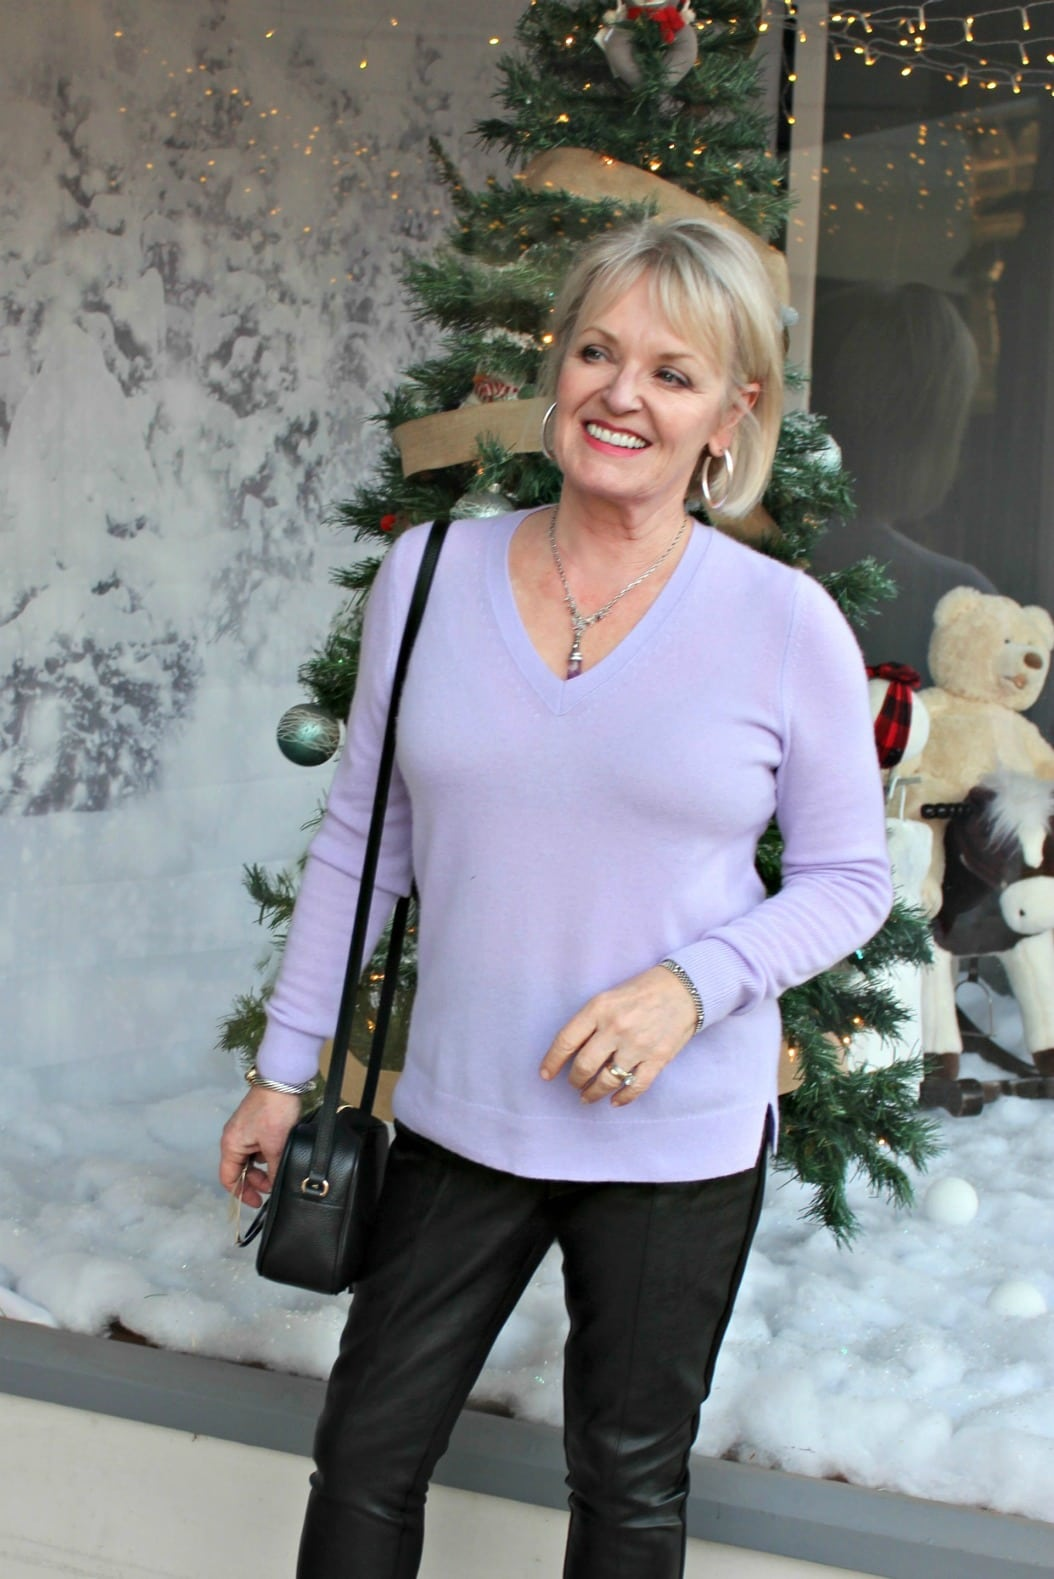 Jennifer of A Well Styled Life wearing lavender cashmere sweater from Ann Taylor